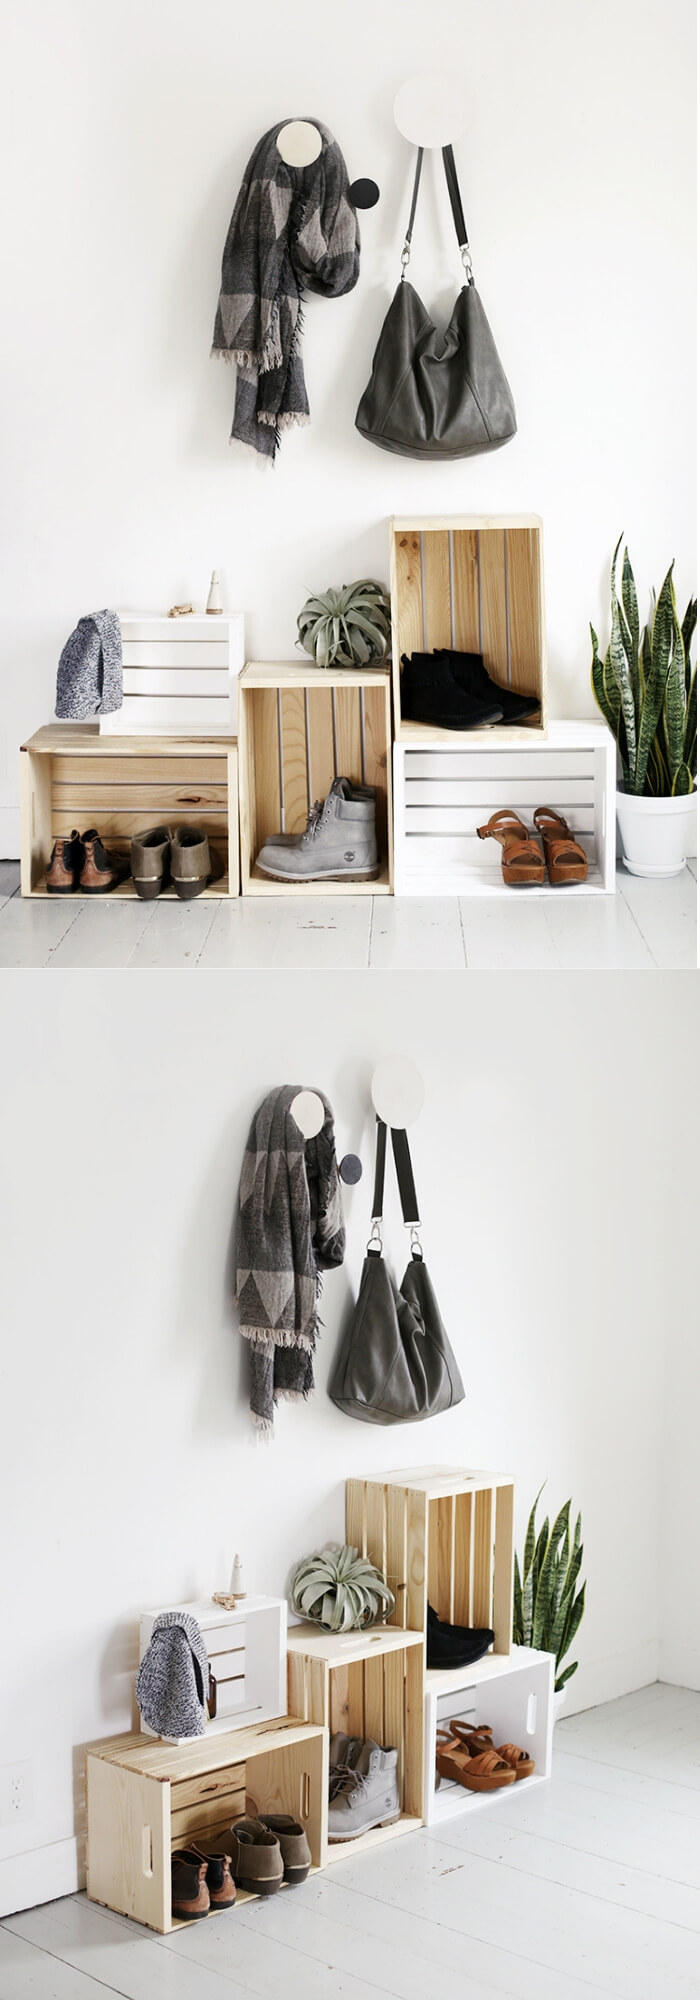 Wooden Crate Shoe Storage | Smart Shoe Storage Ideas & Designs For Any Zoom Size